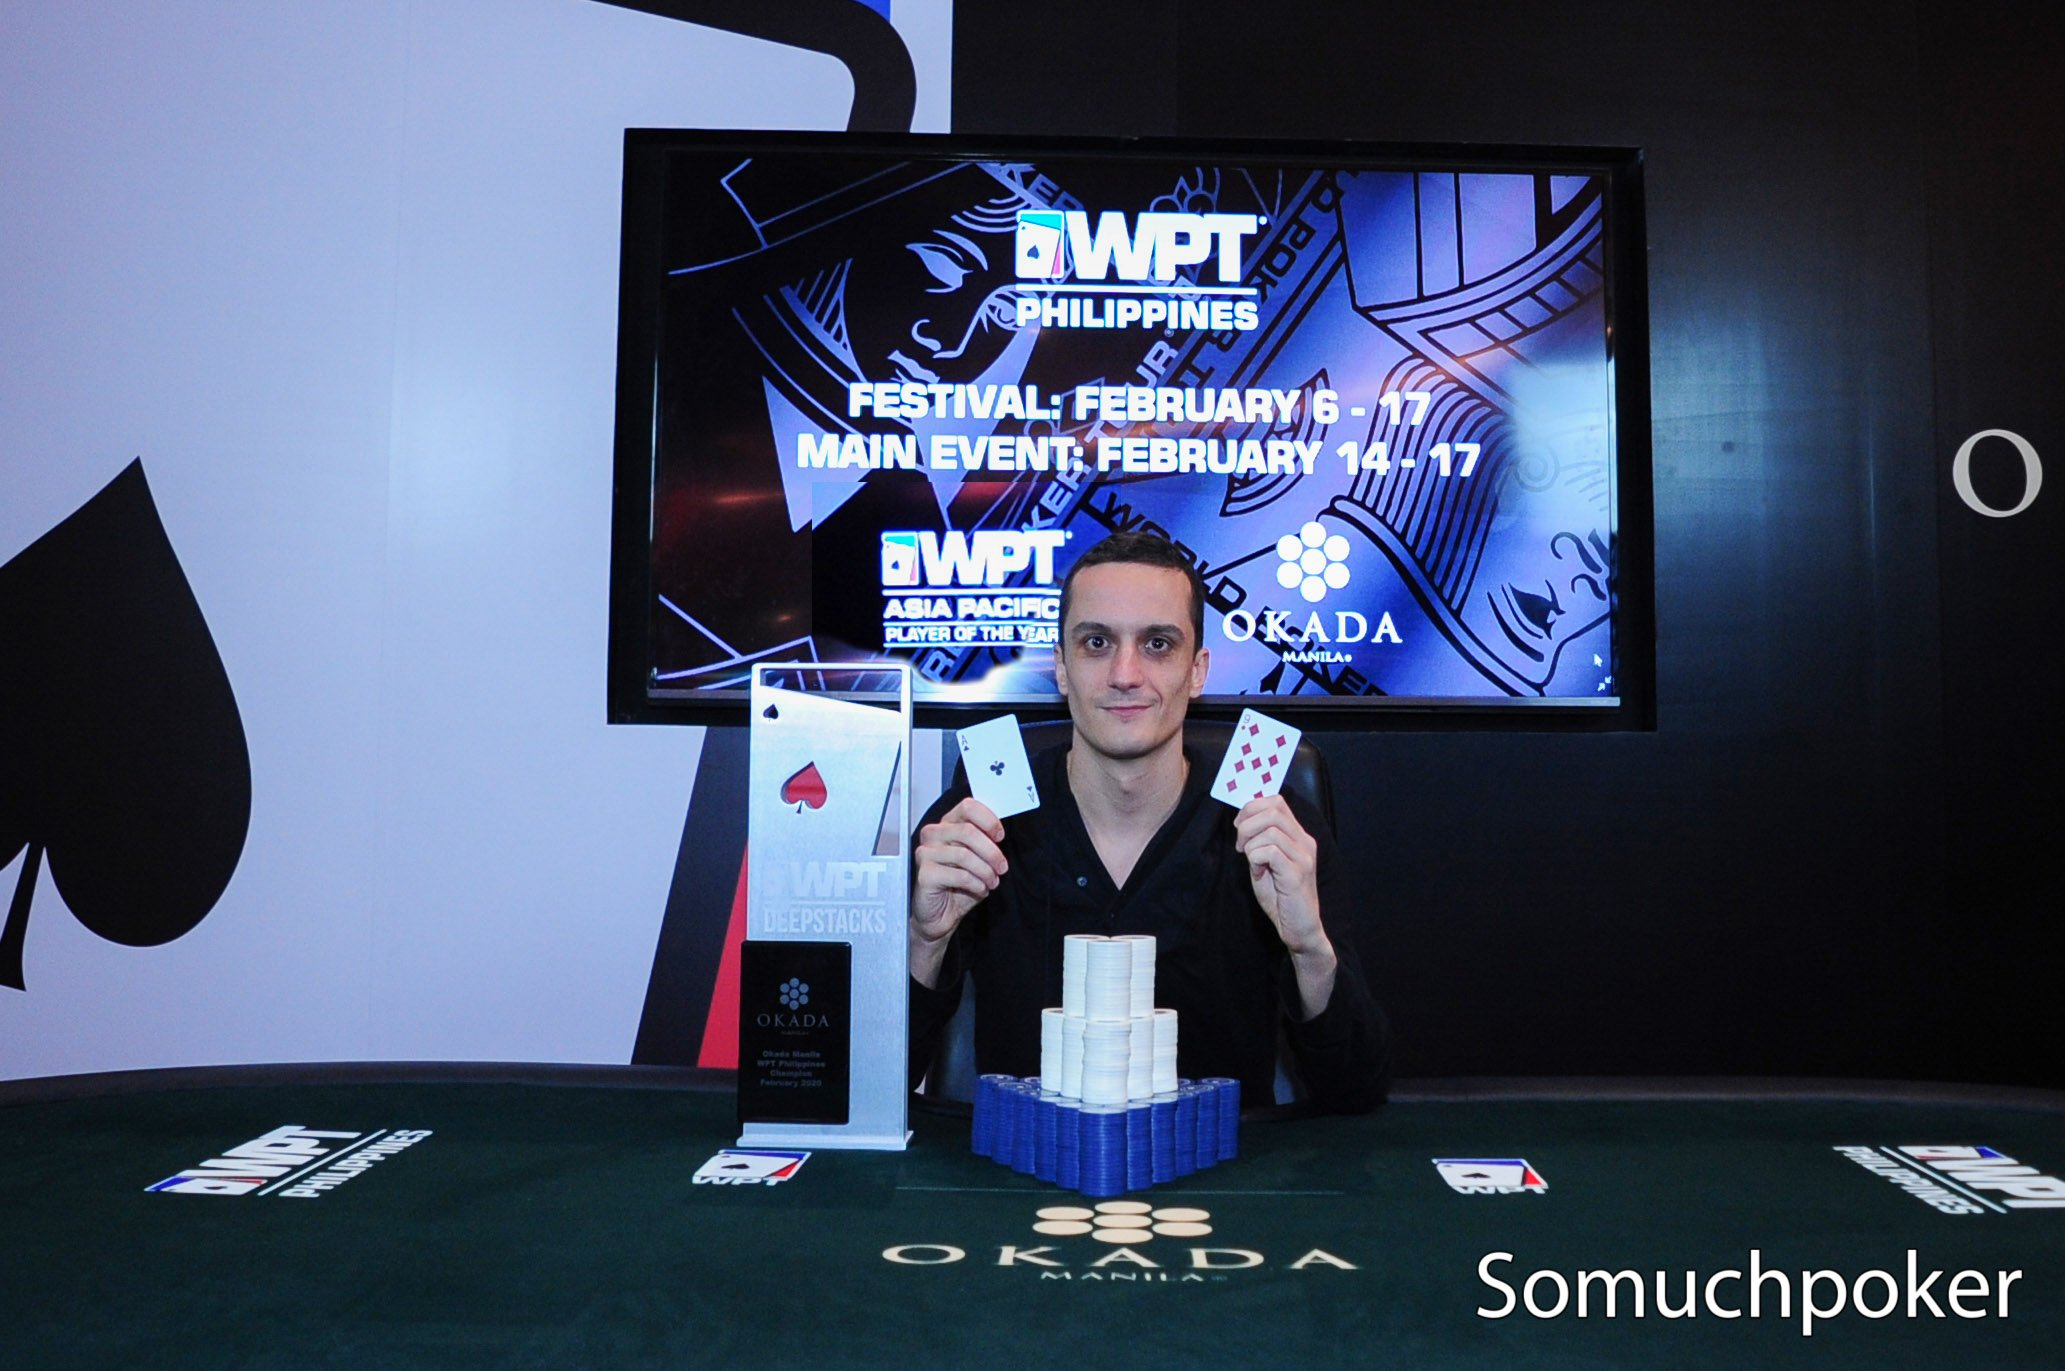 Bulgaria's Dimitar Blazhev wins WPT Philippines Main Event for his first major live title